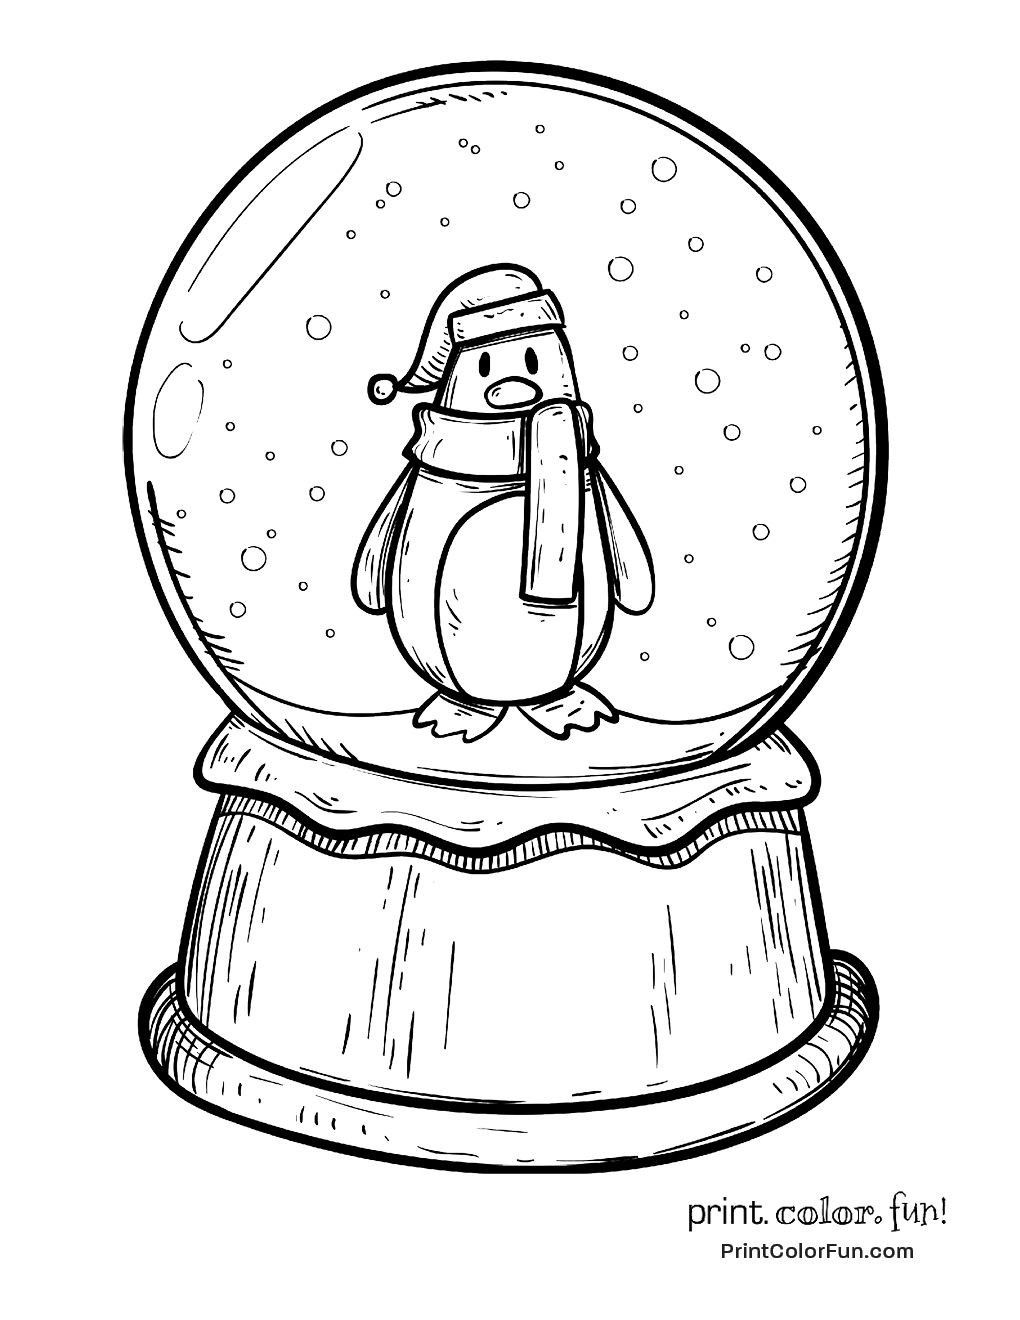 Pin by Lara on Holiday Coloring Pages  Penguin coloring pages